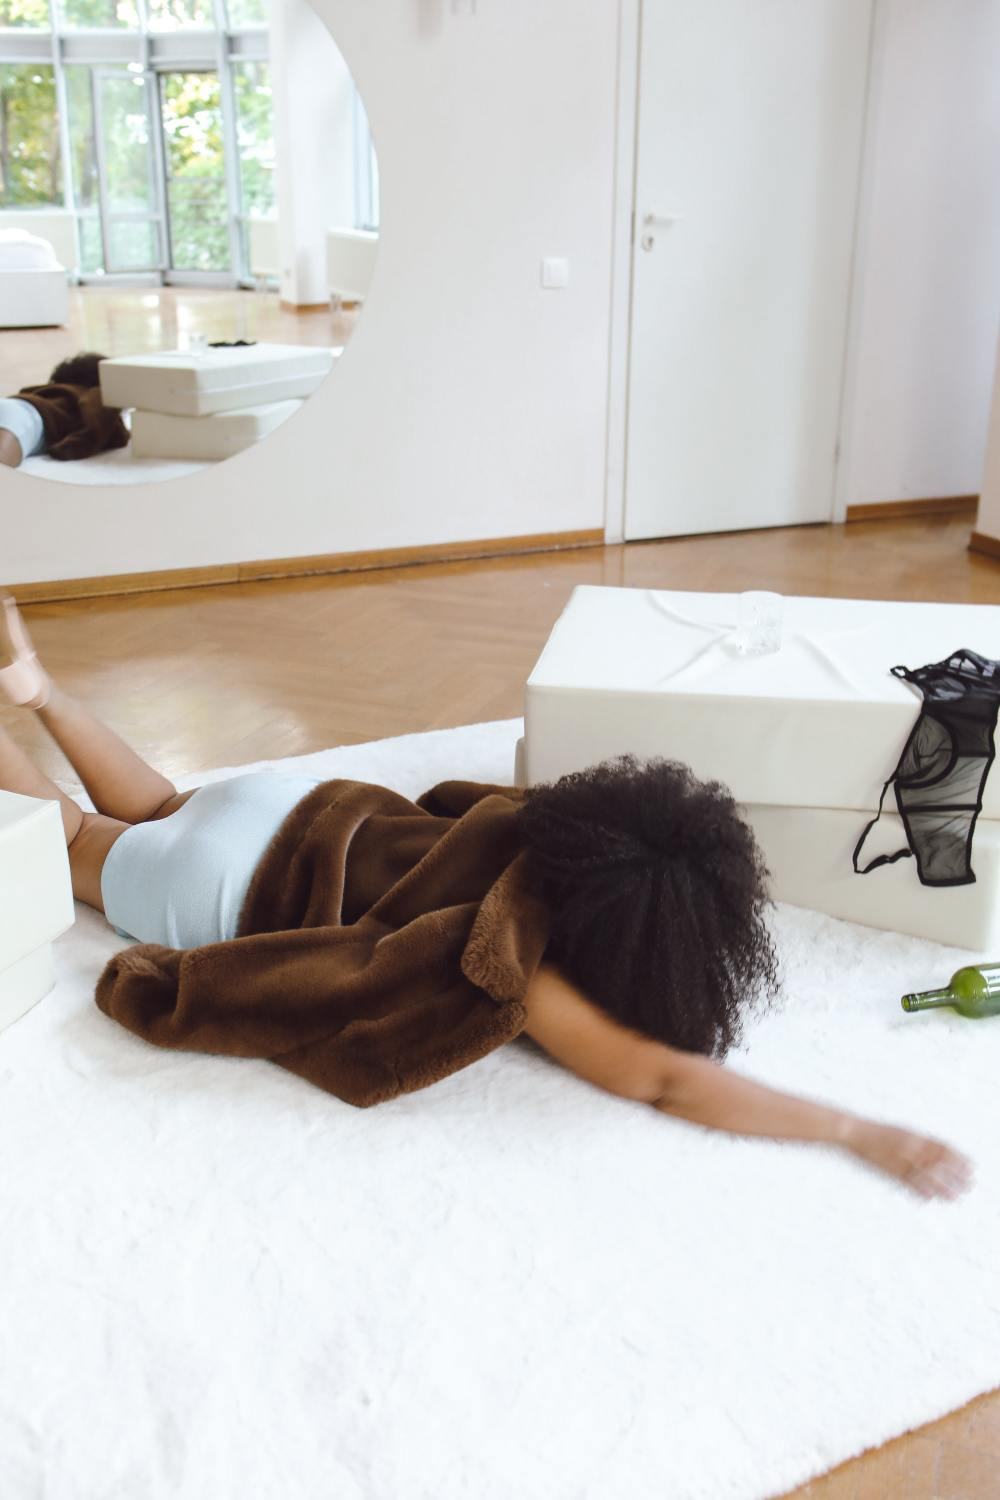 the best and worst foods for a hangover